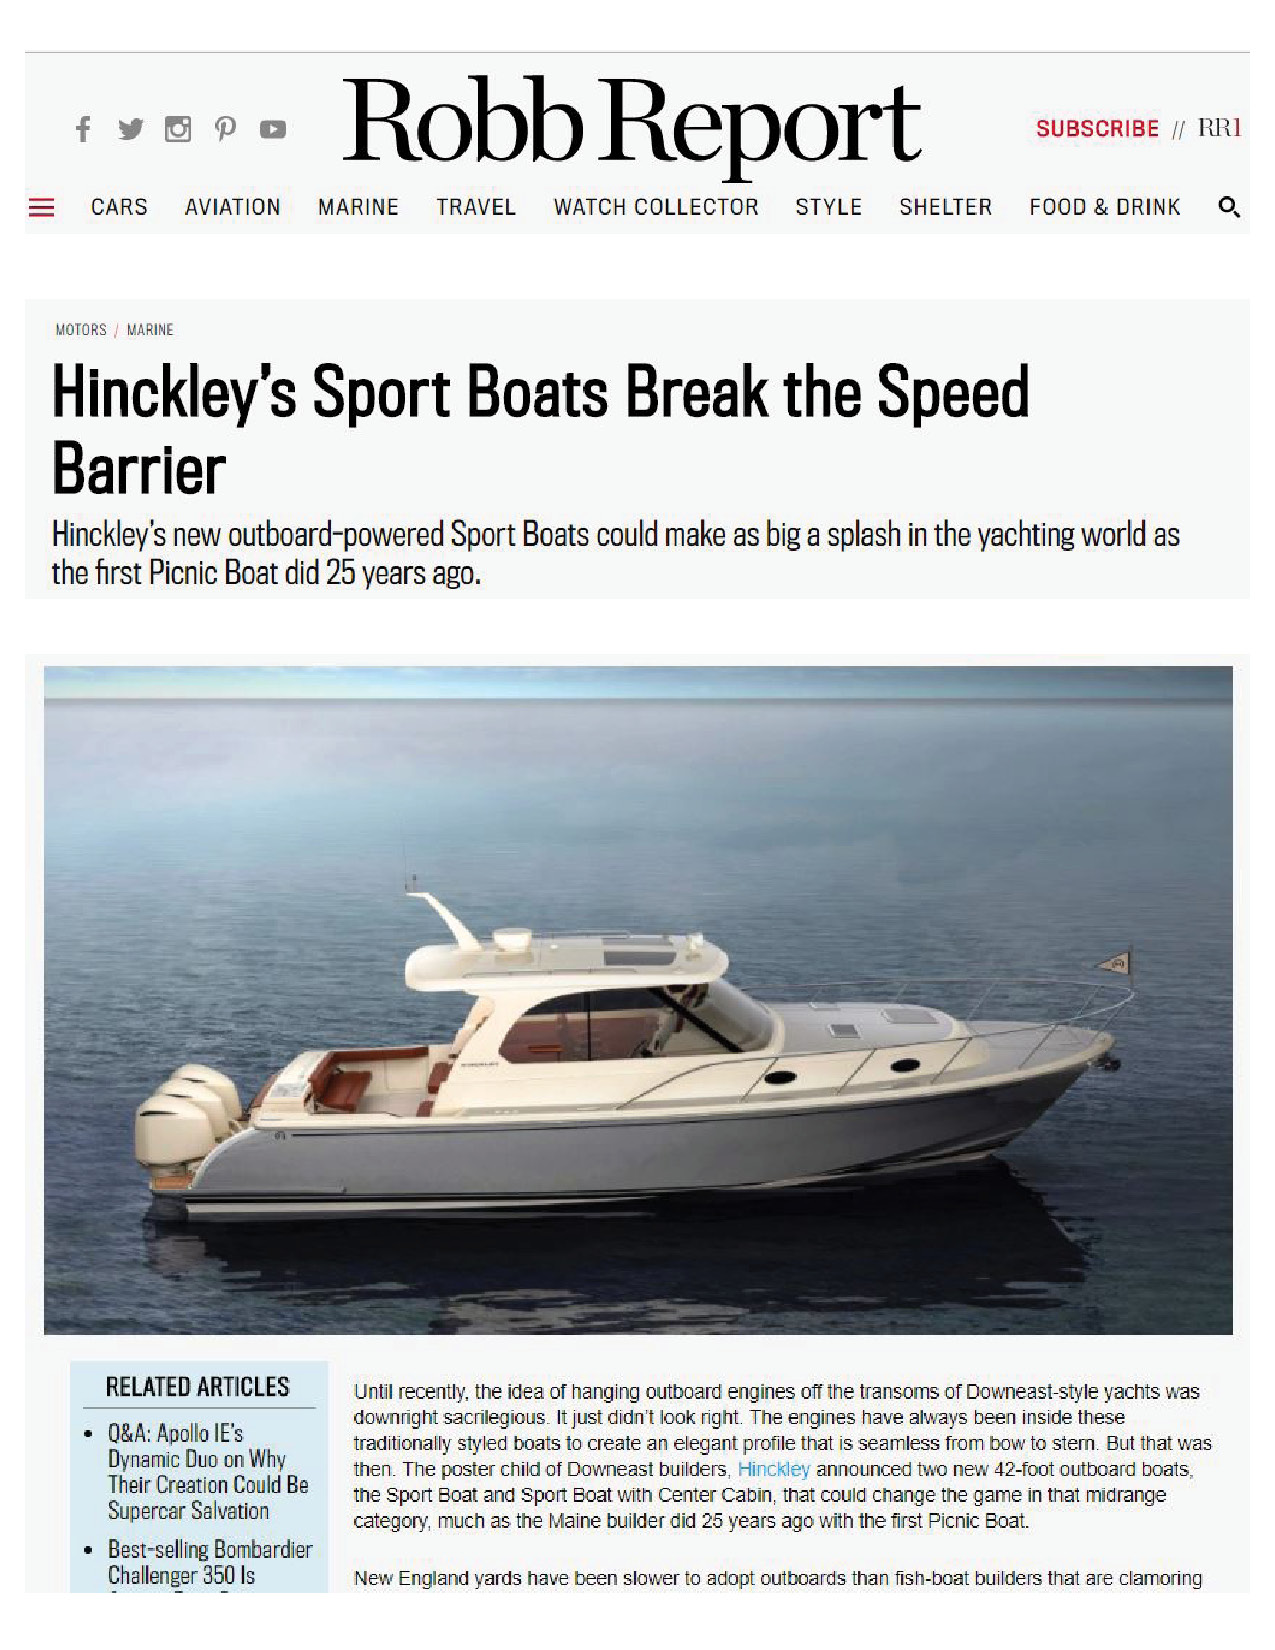 Hinckley Sport Boats Featured on Robb Report